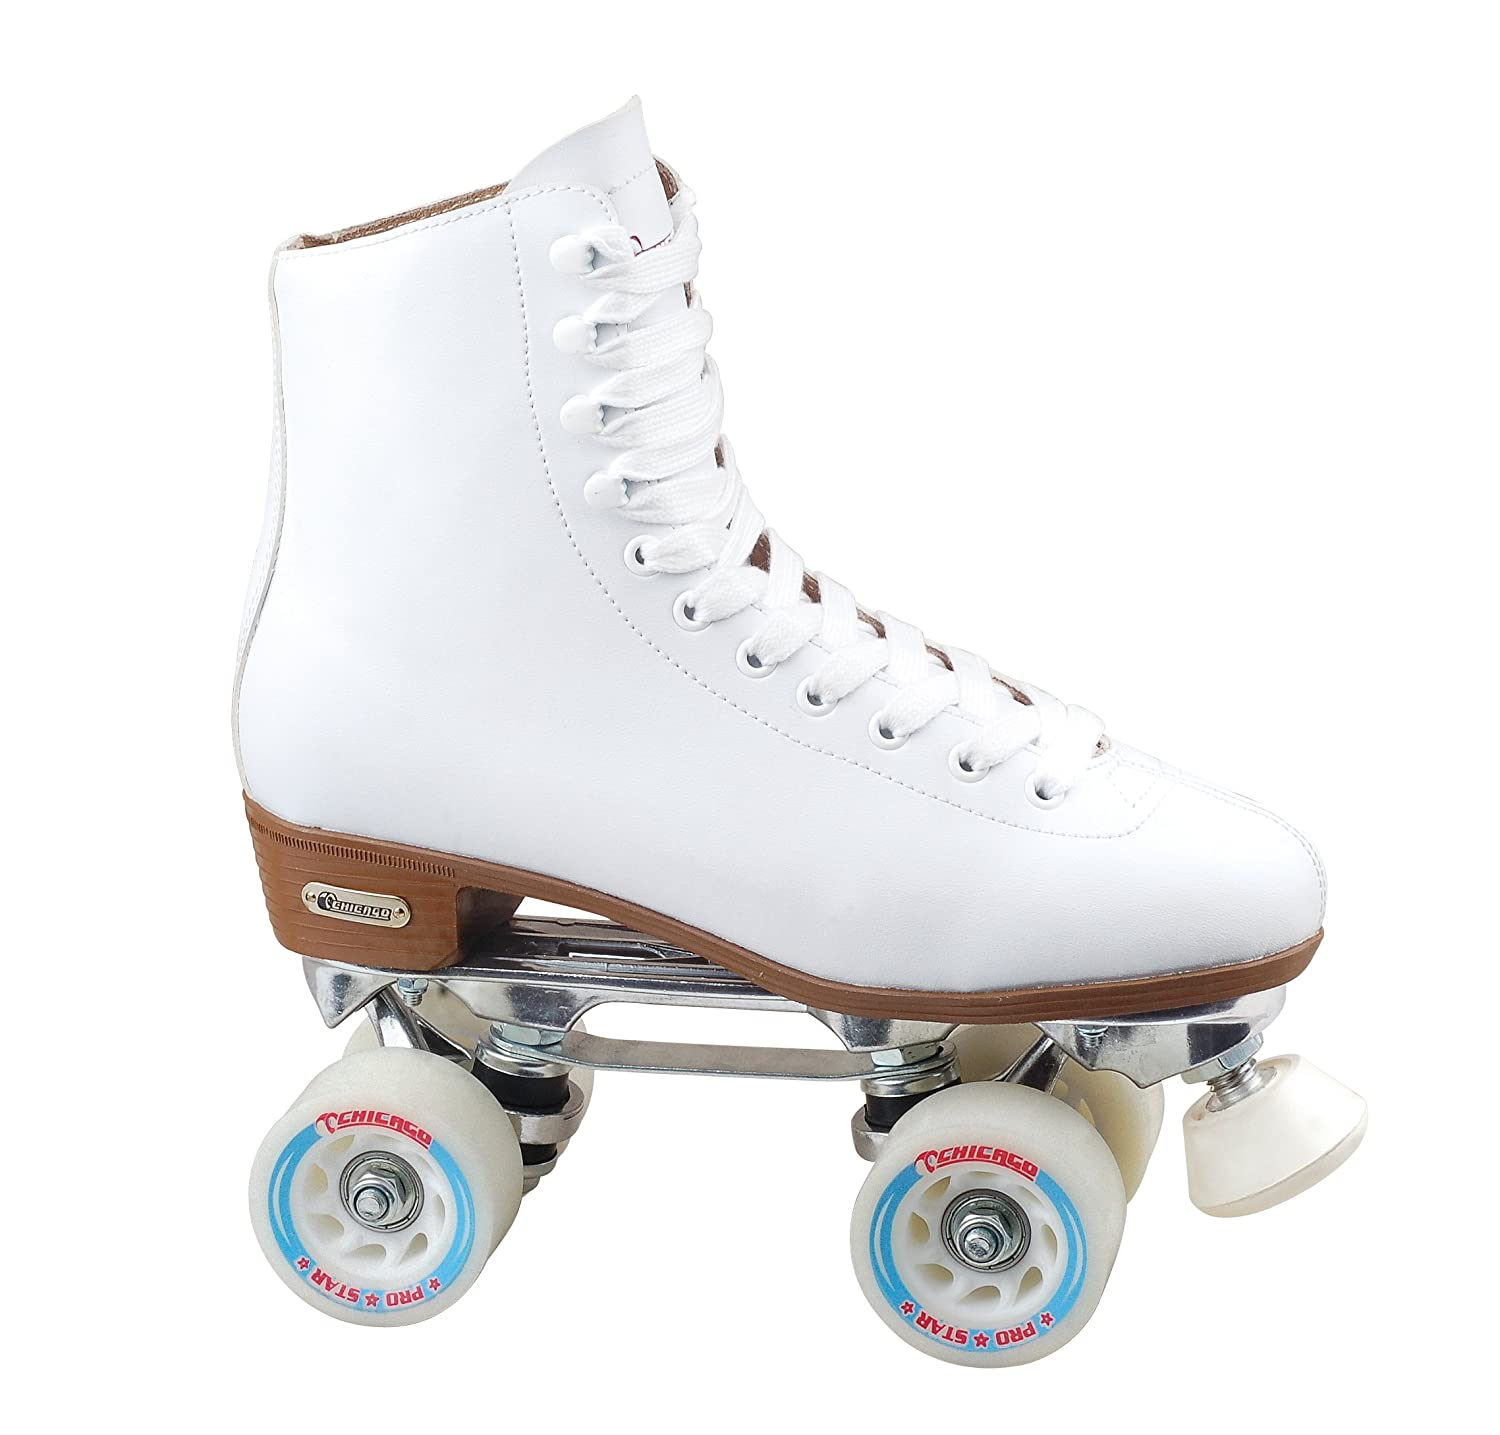 Roller skates used for sale